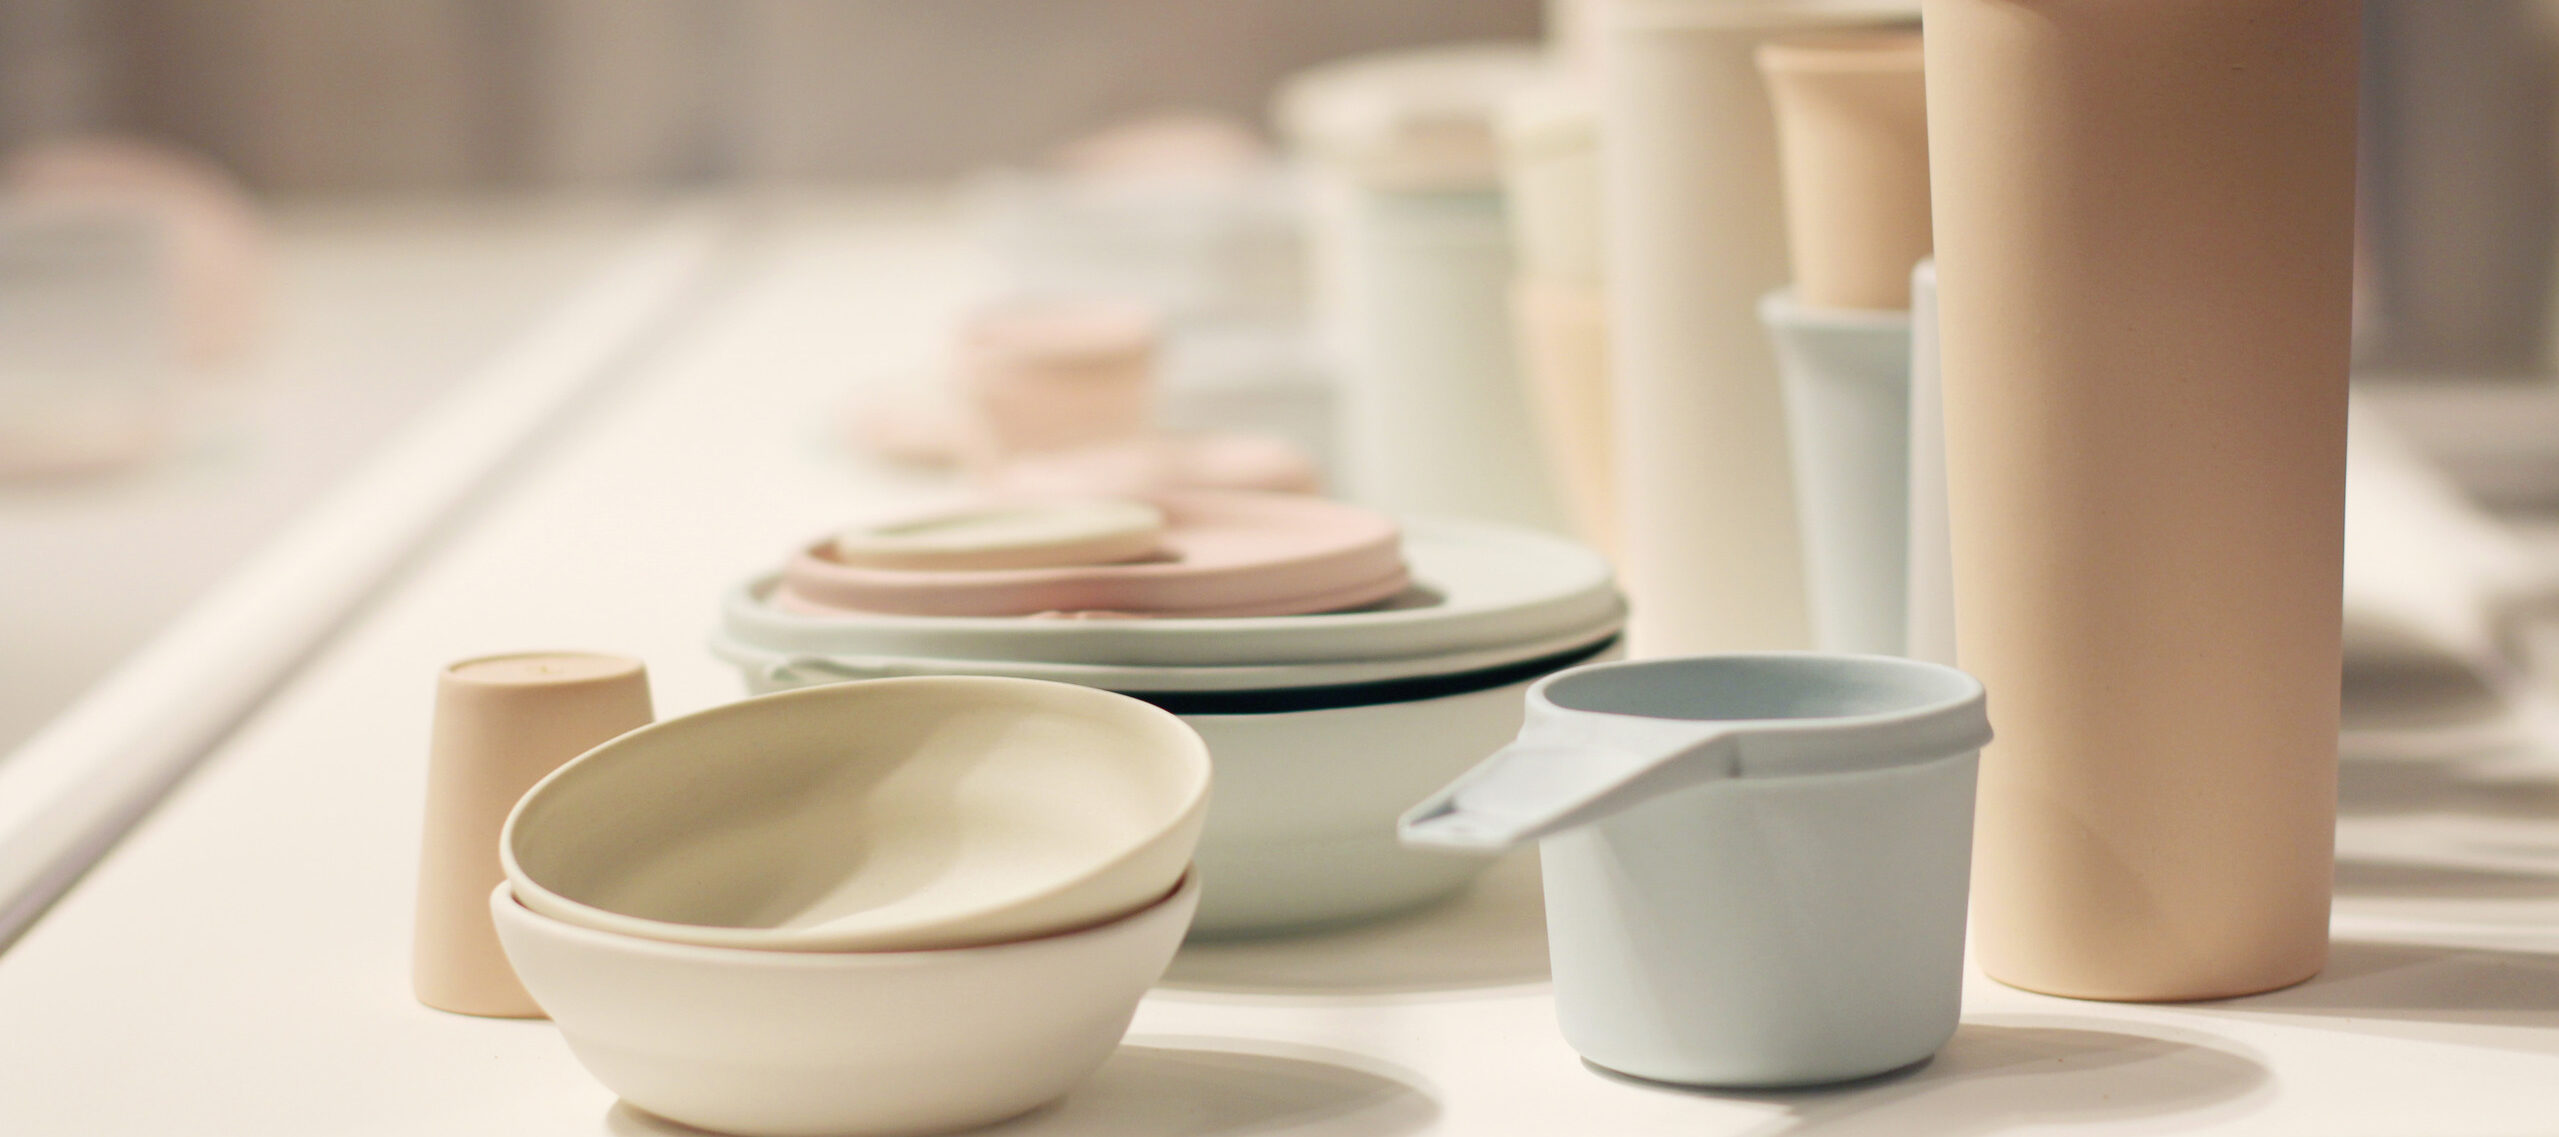 A large collection of pastel, ceramic vessels resembling stacks of myriad Tupperware.